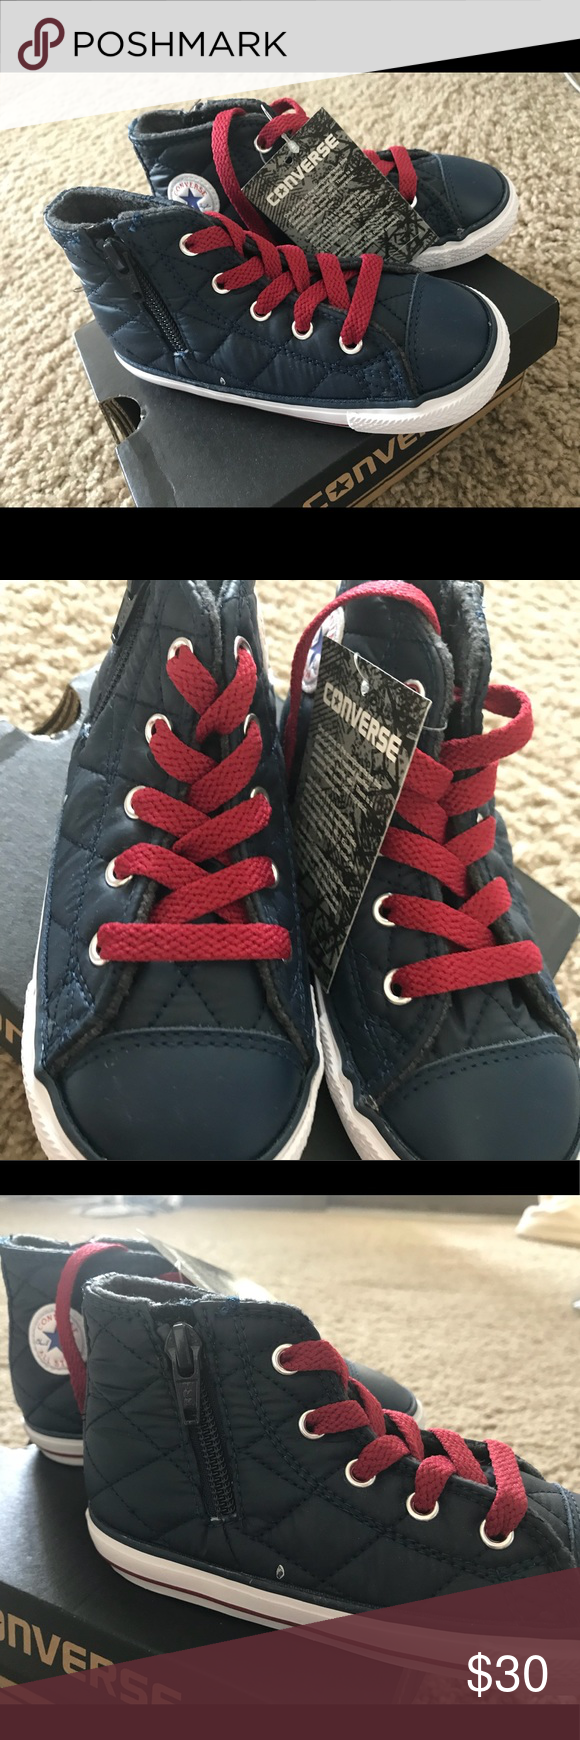 406cce32cb7cdc New kids converse shoes. Size 9. Zip up shoe. Funky style